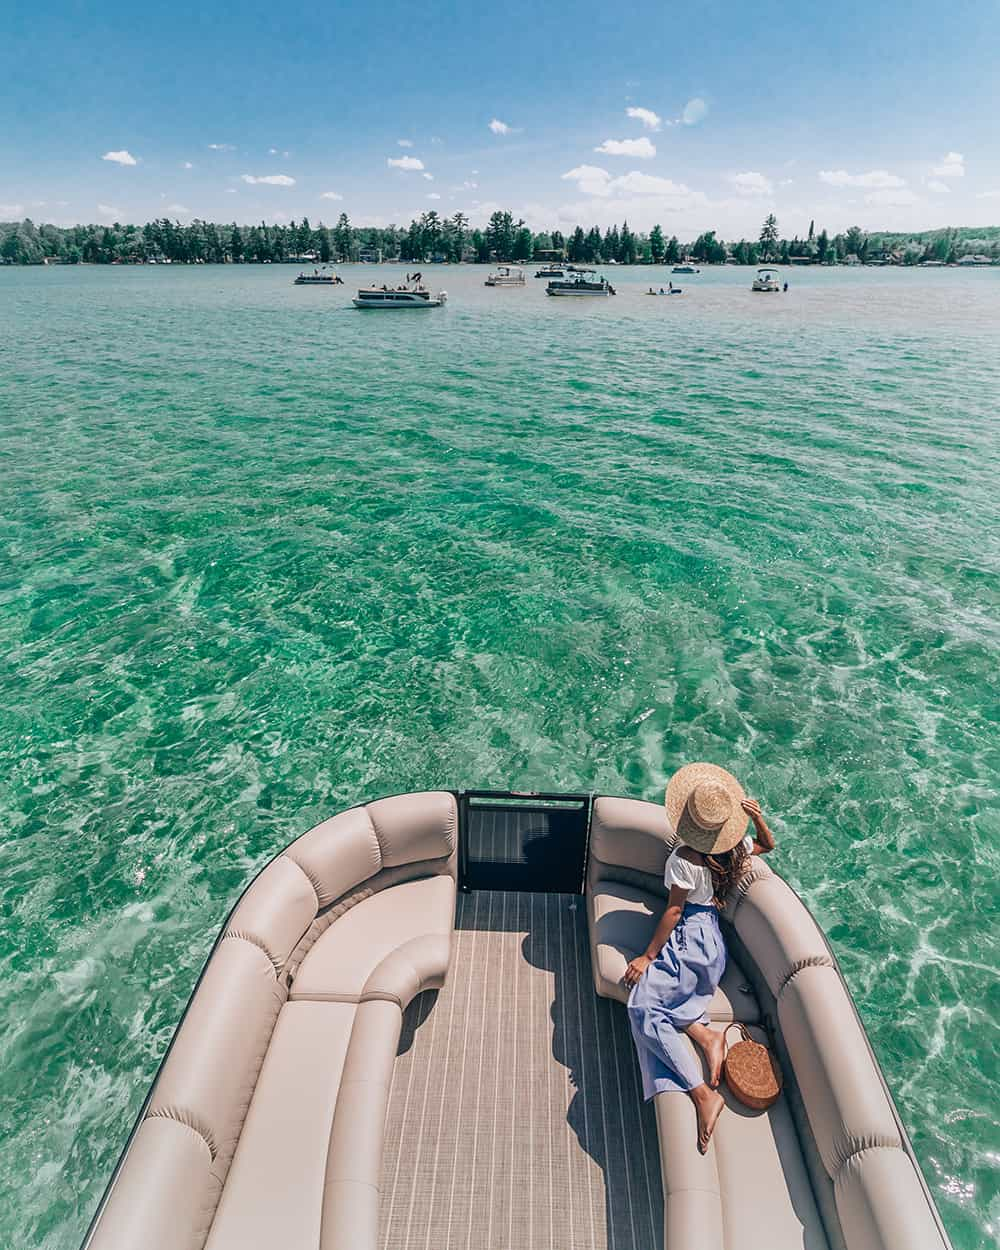 Torch Lake in Michigan